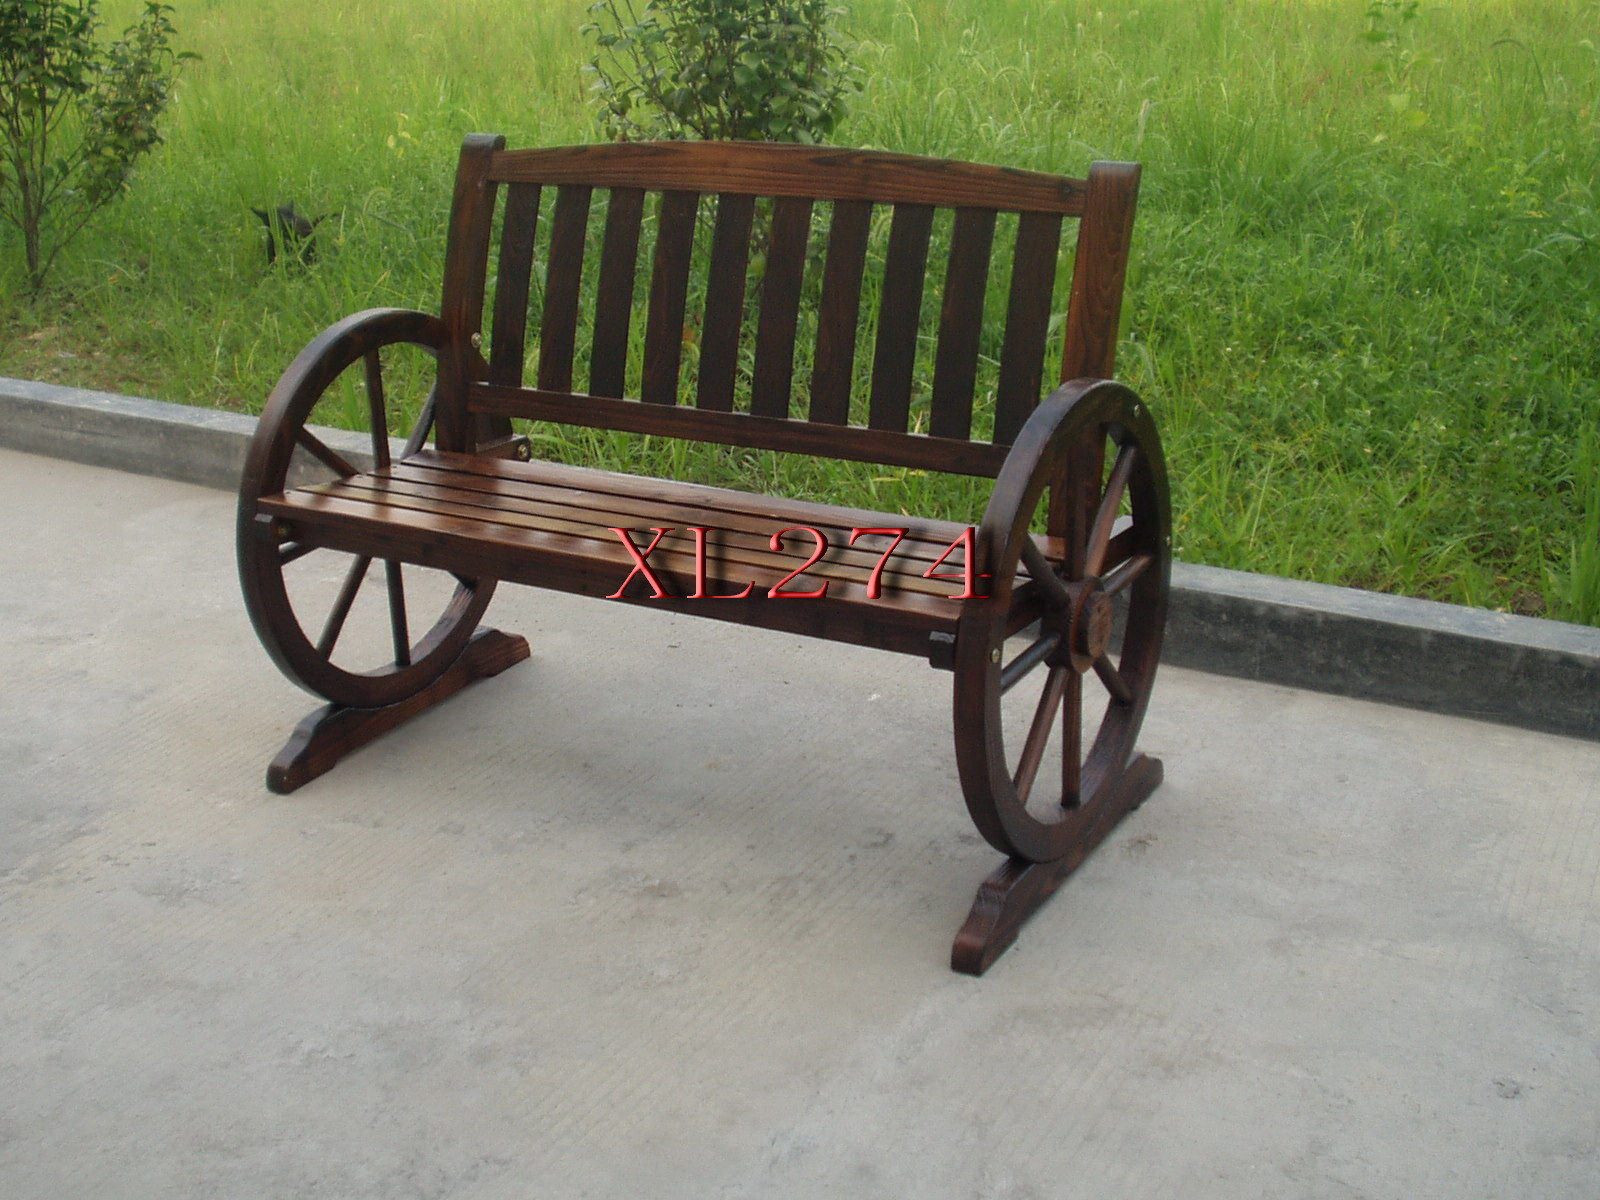 Outdoor Bench in Garden, Park, Community with Back Assembled